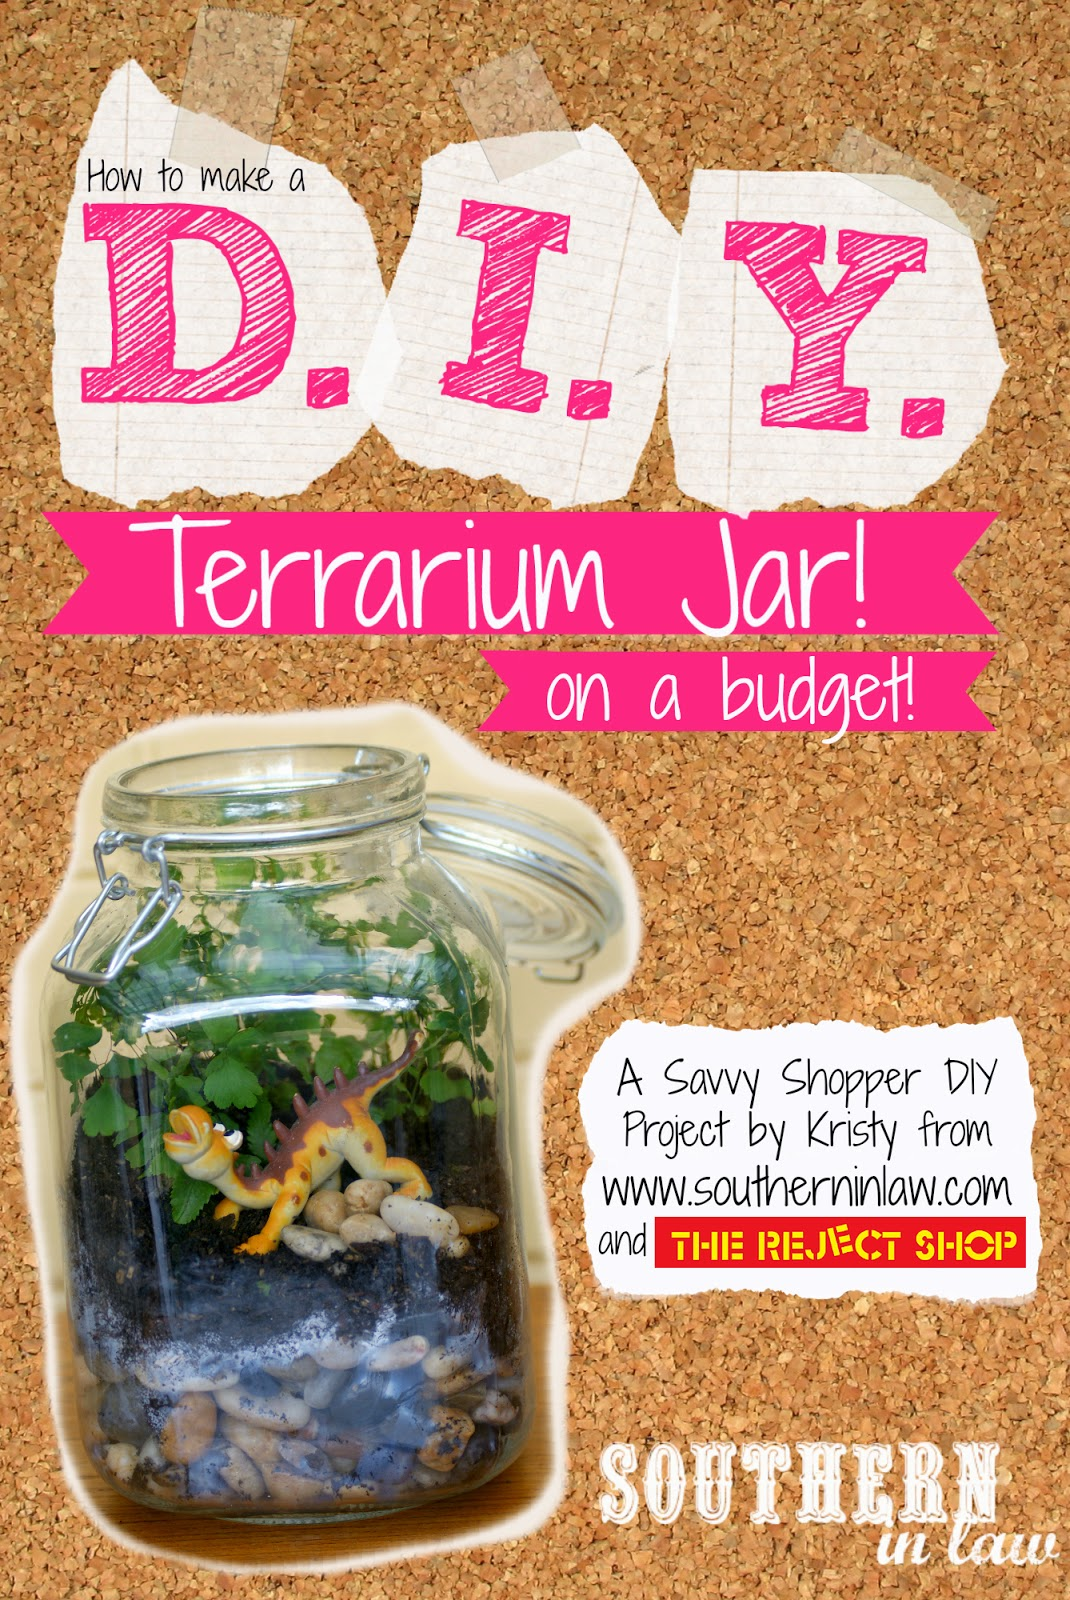 How to Make a Terrarium Jar on a Budget - Simple Weekend Projects - Dollar Store Craft Projects for Kids